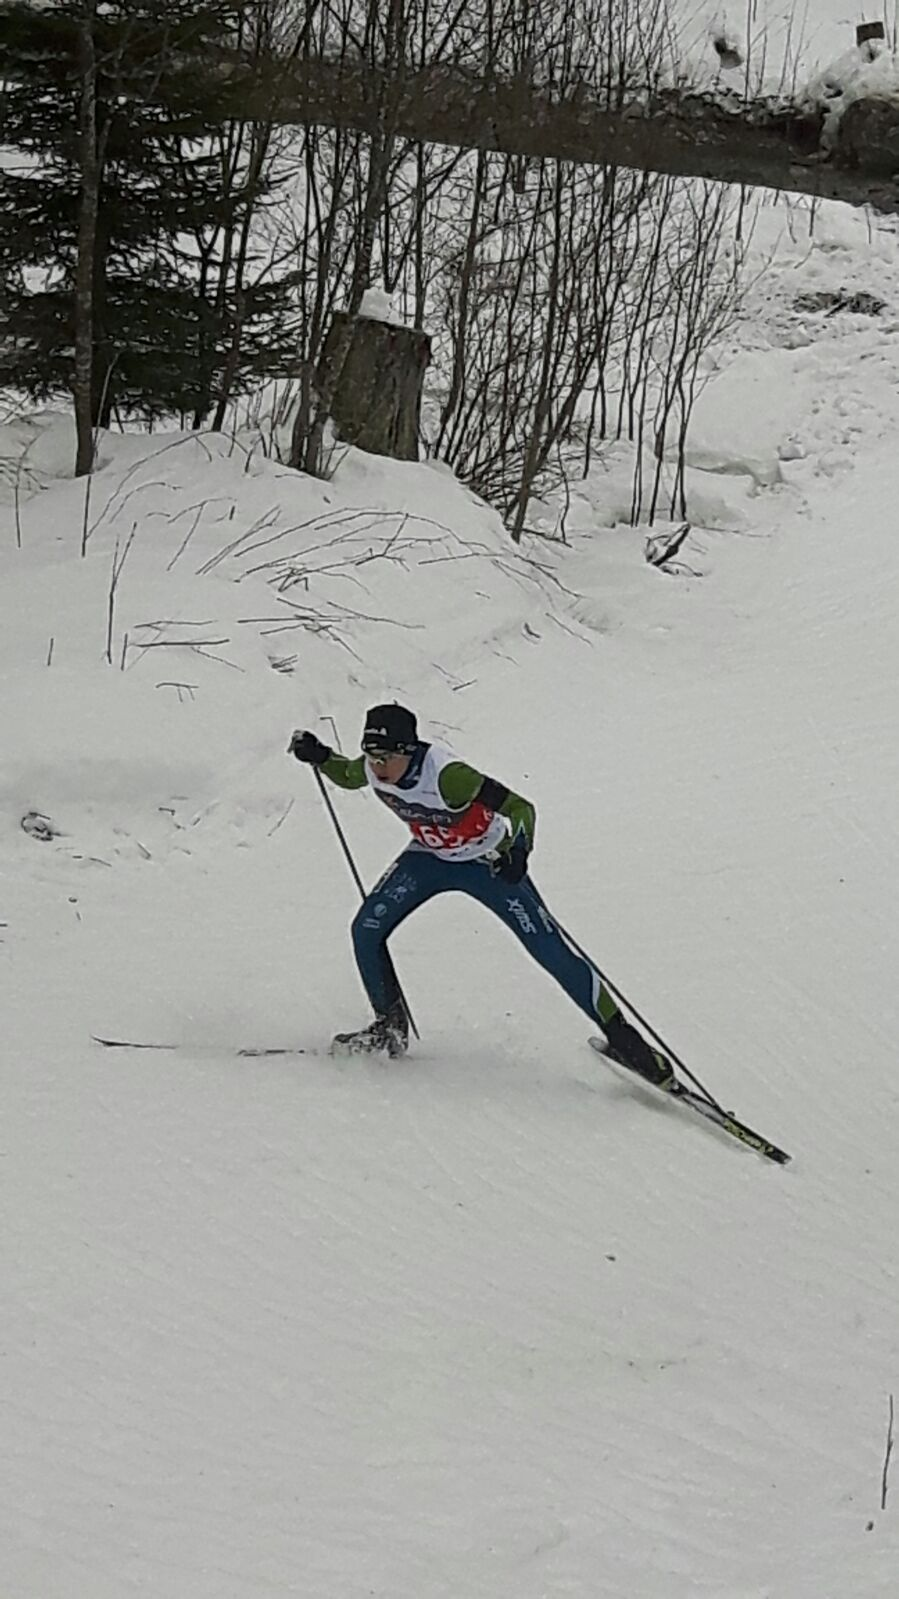 files/images/Biathlon_James_Flühli.jpg